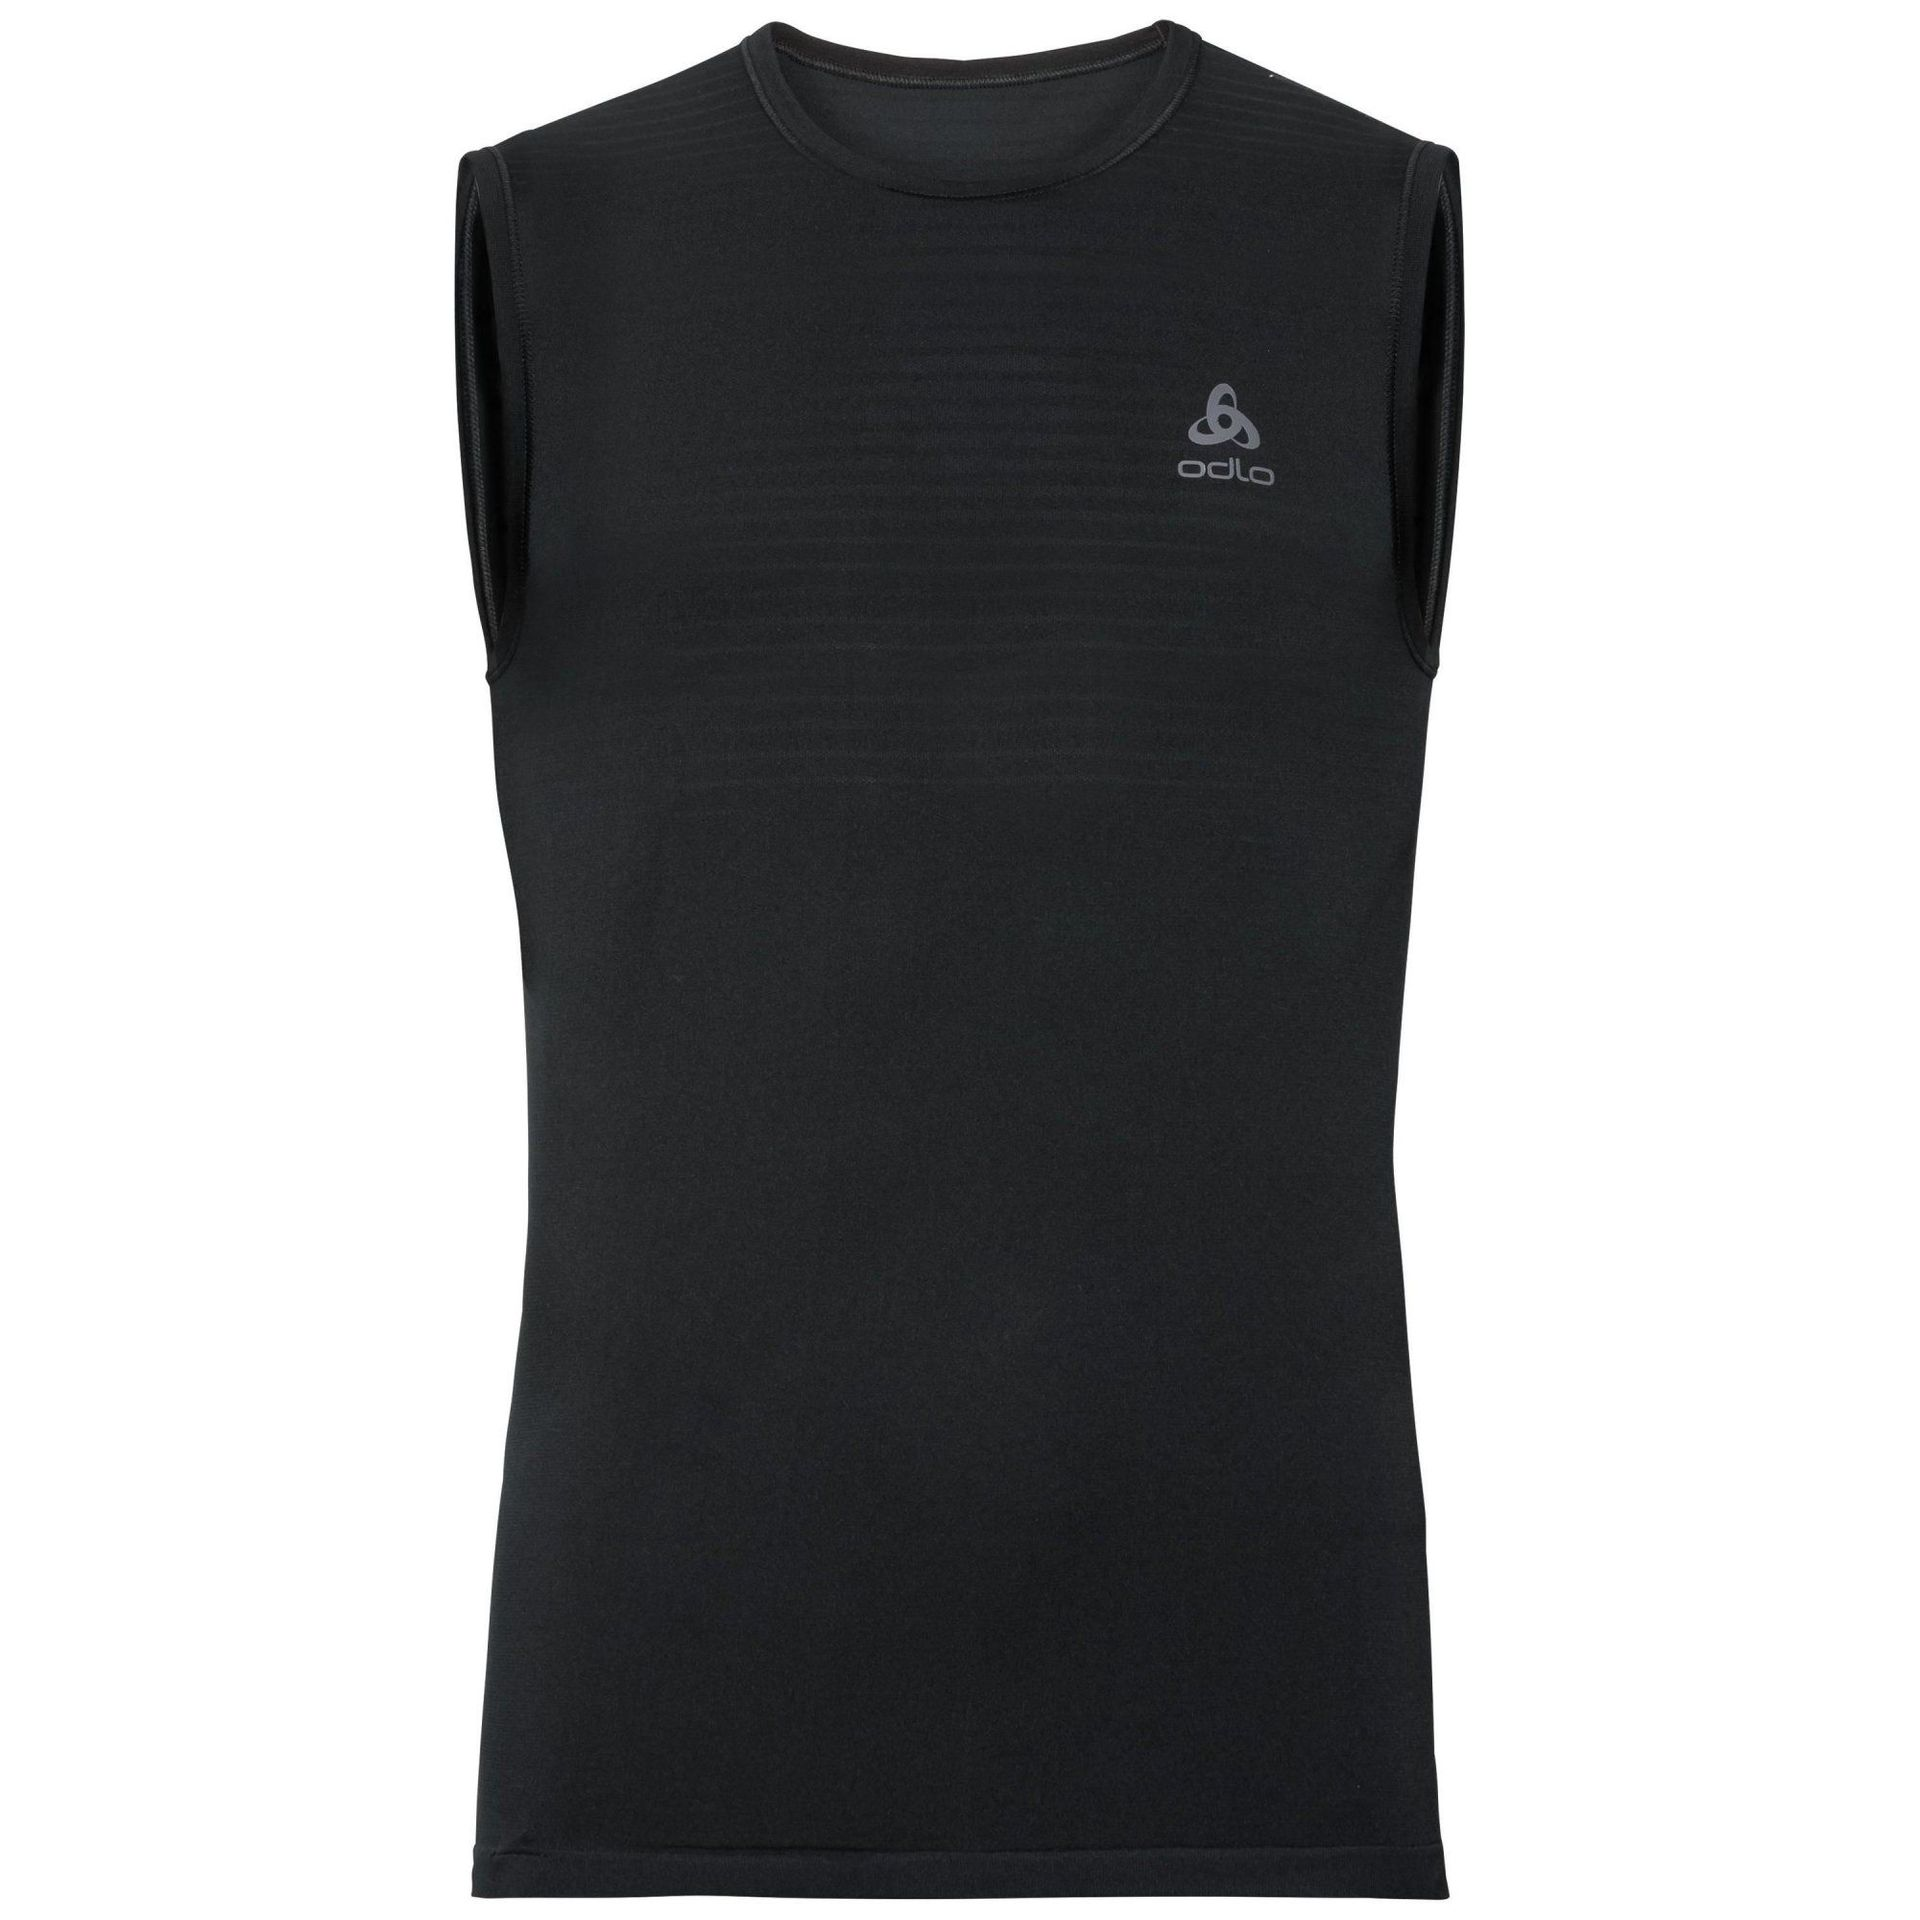 KOSZULKA ODLO PERFORMANCE X-LIGHT SINGLET BLACK 188202-15000 1